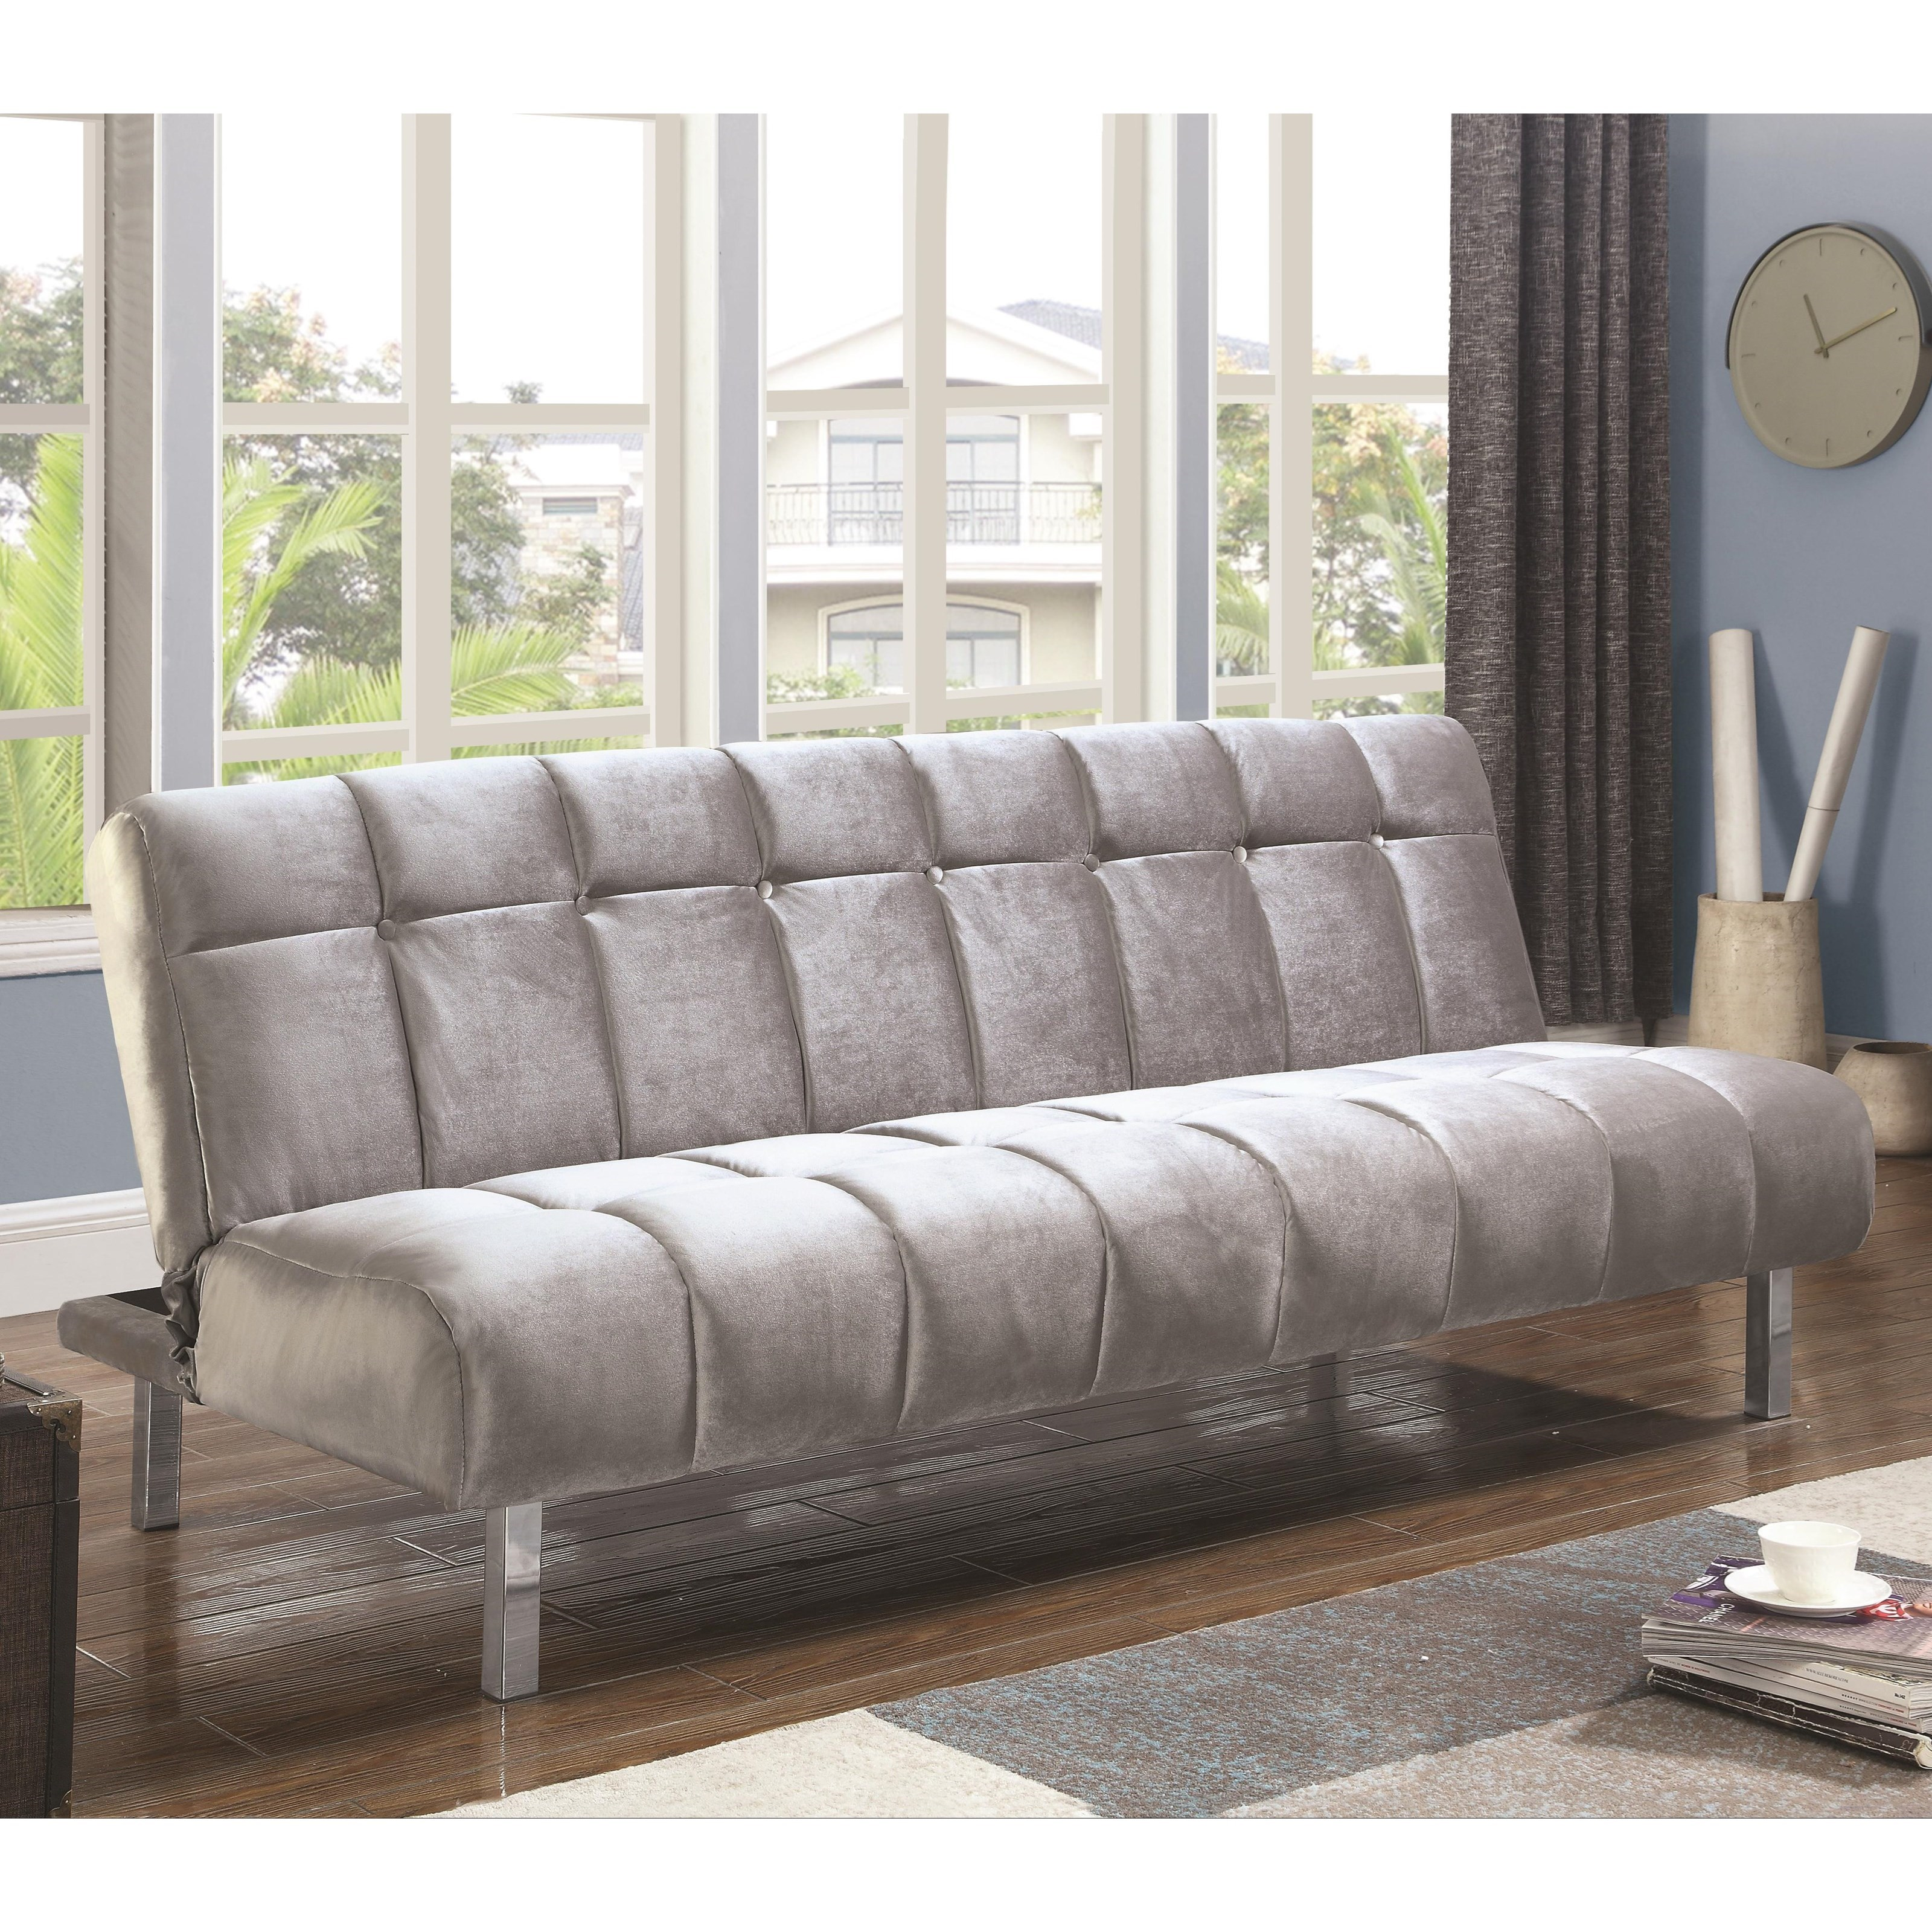 Coaster sofa beds and futons contemporary sofa bed with for Value city furniture sofa bed